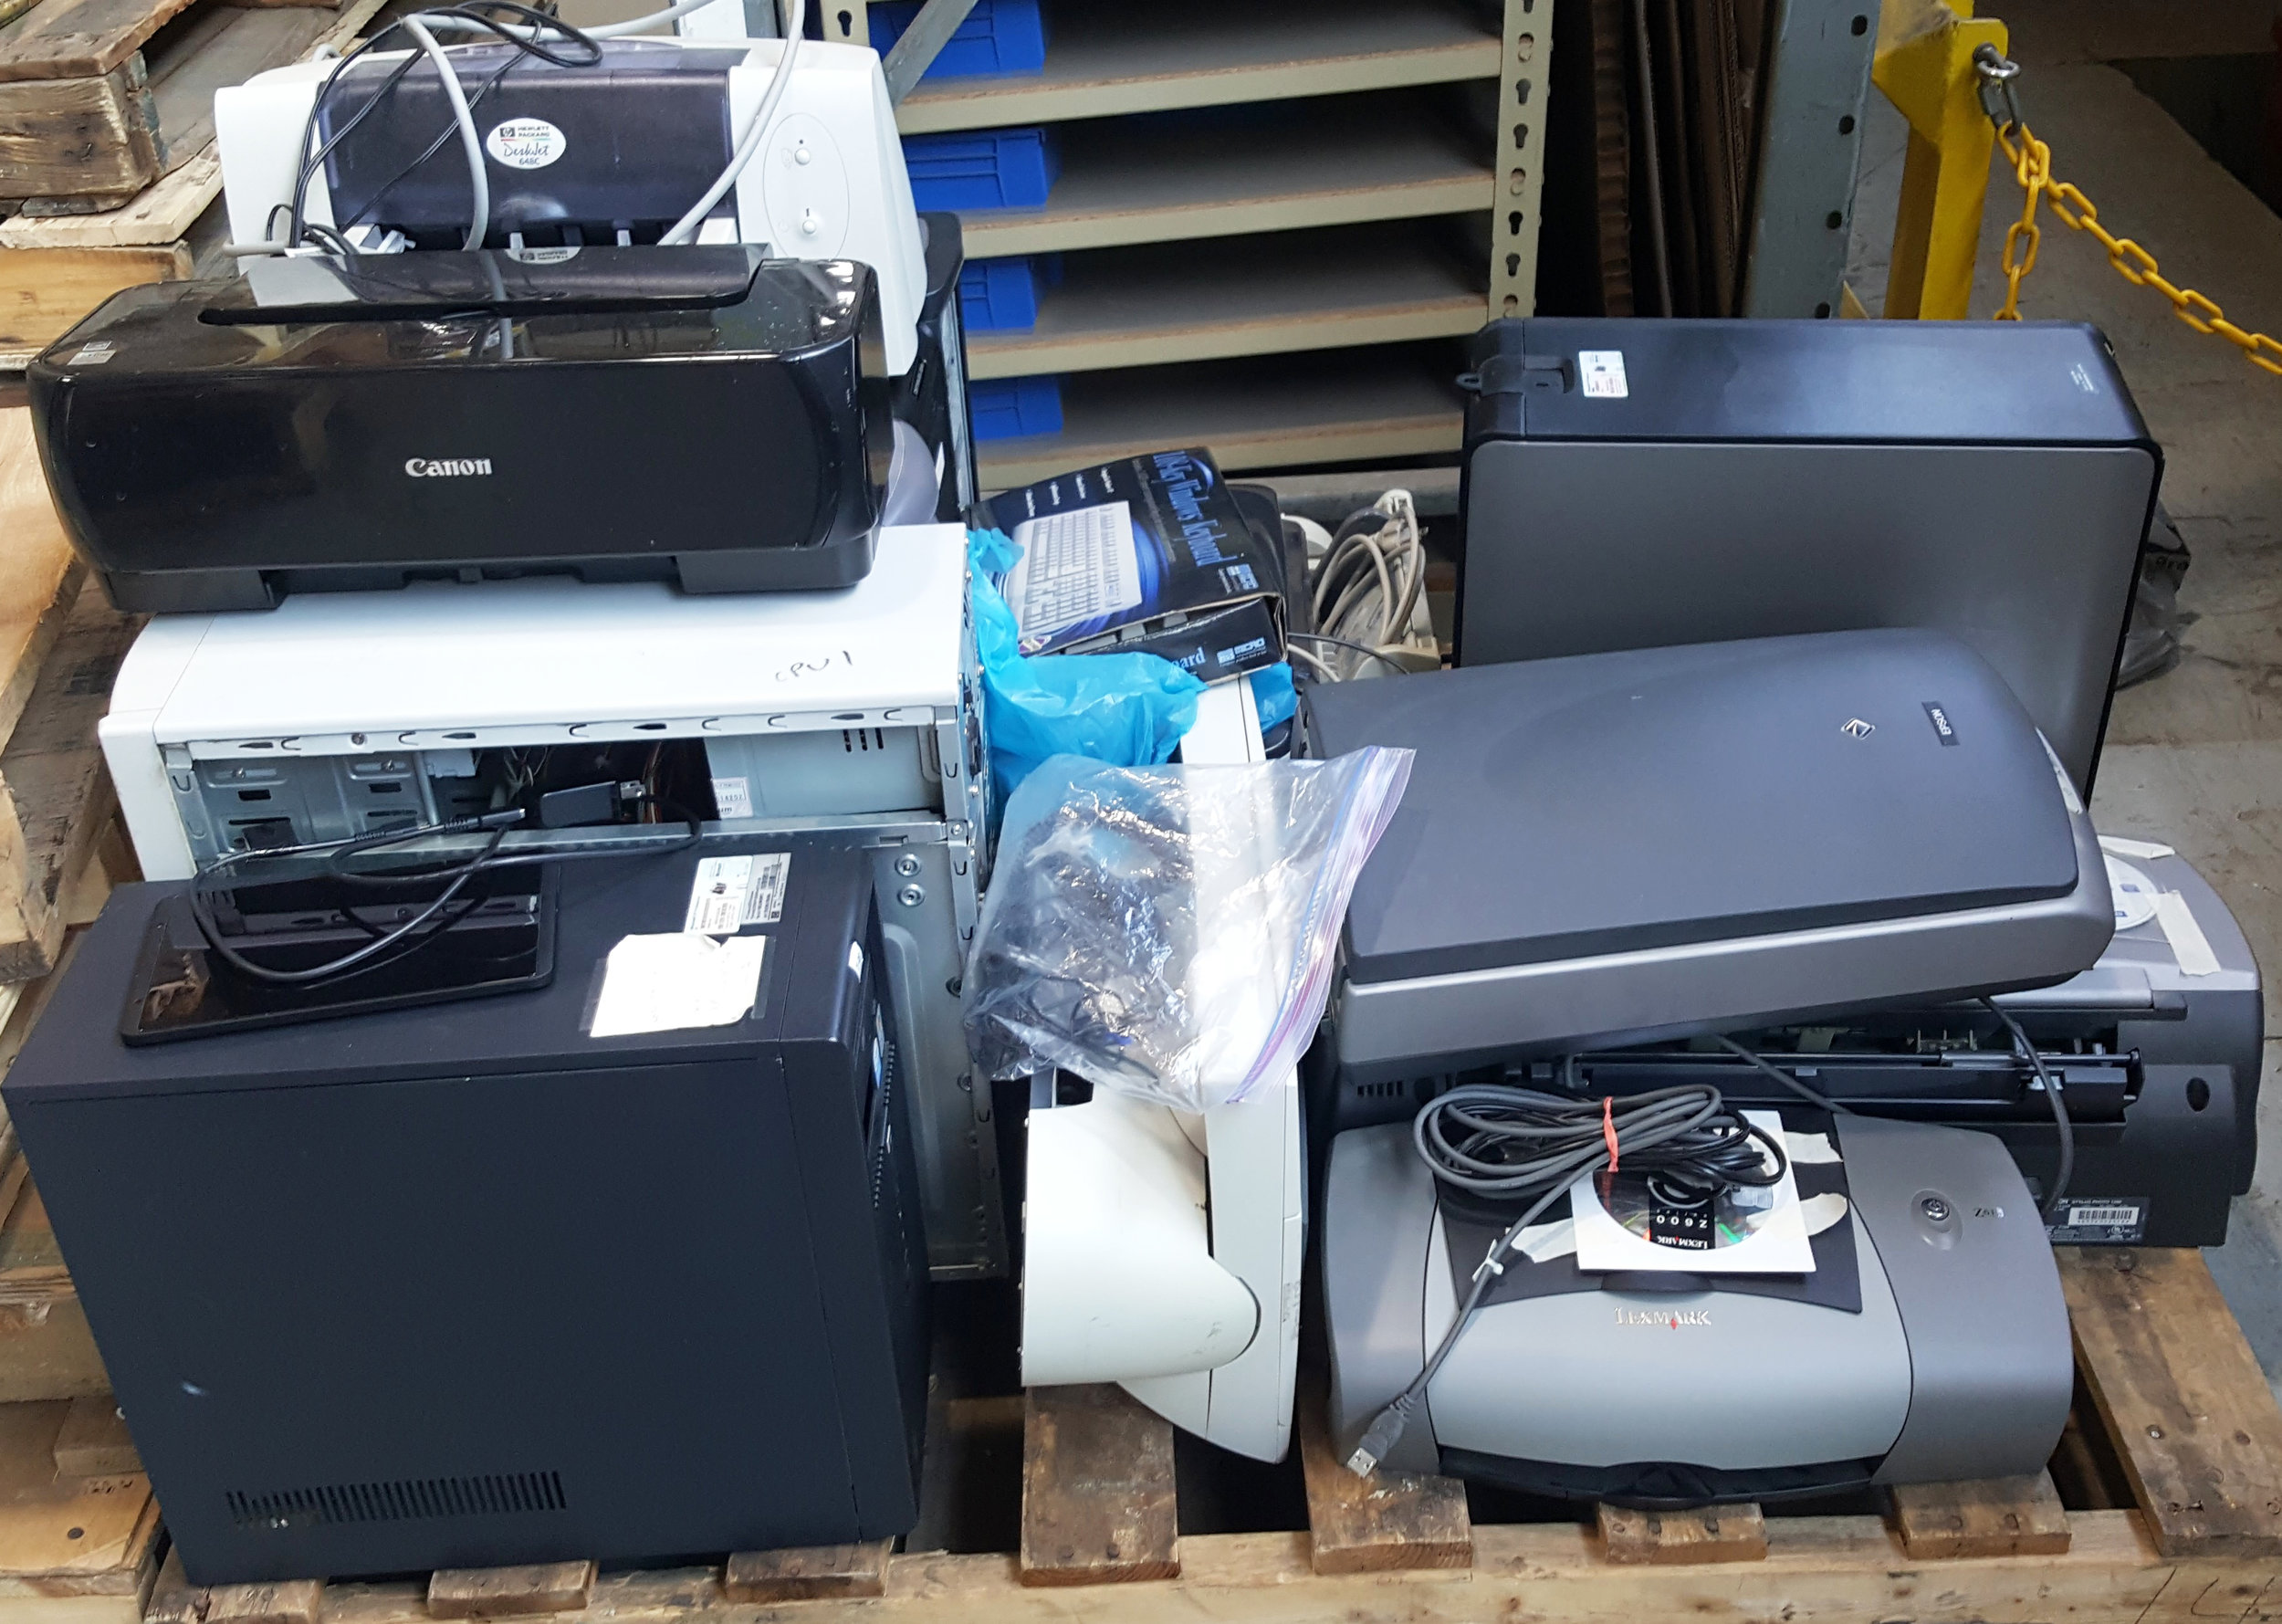 Intervala employees kept dozens of old printers, monitors, computers, and laptops from ending up in landfills. The unused electronics will be responsibly recycled instead.